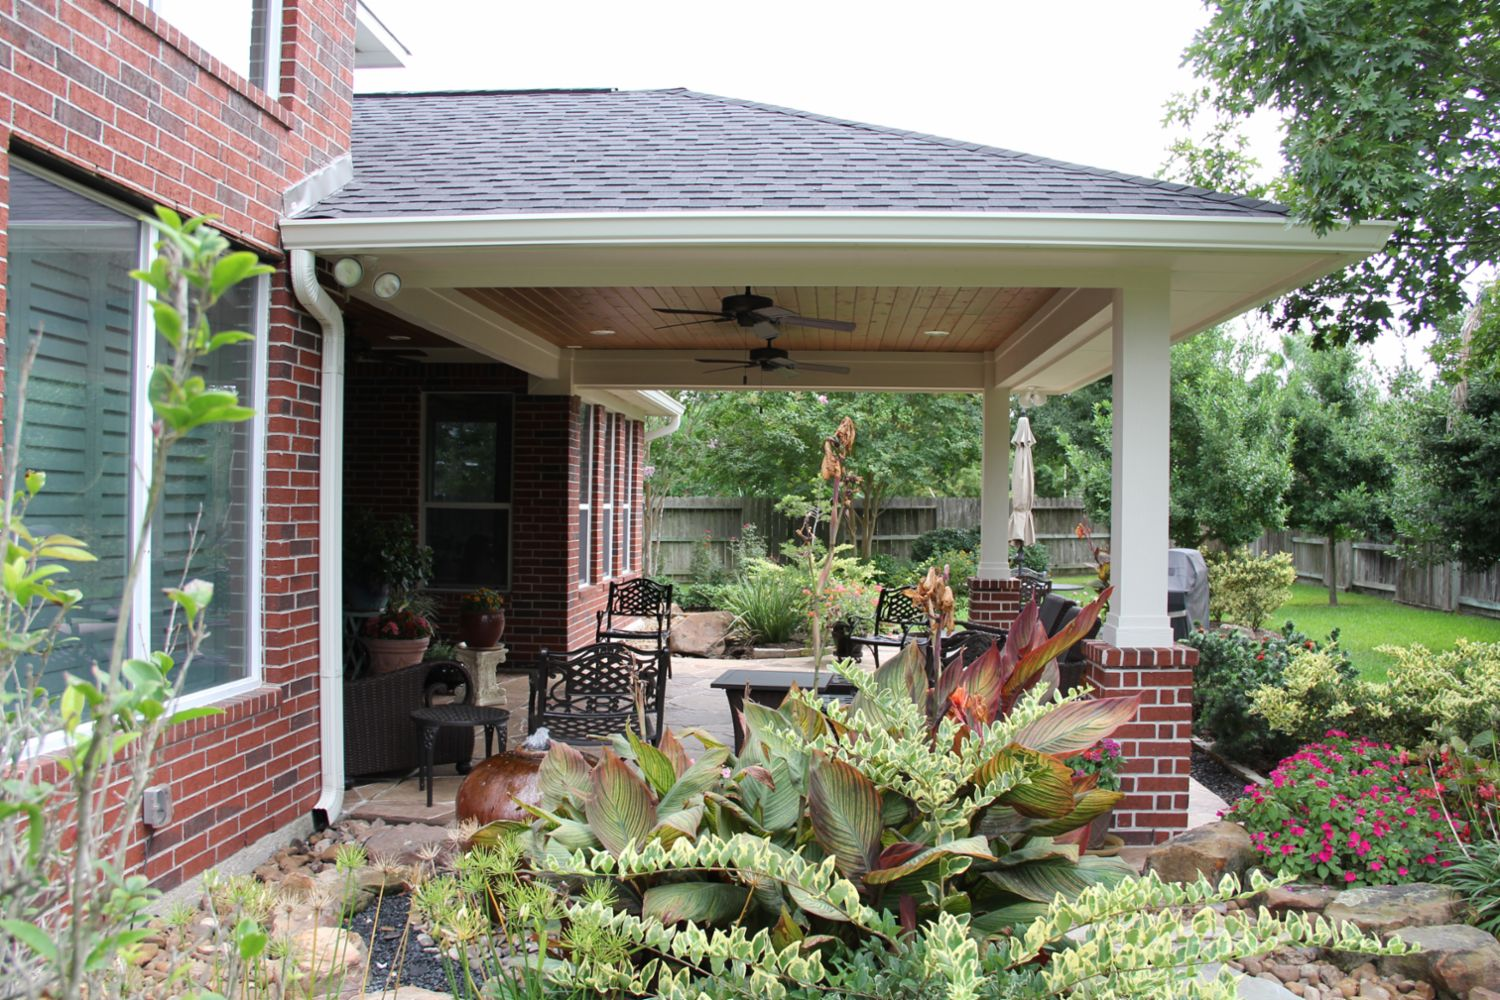 Patio covers outdoor kitchens fire features in katy tx tradition